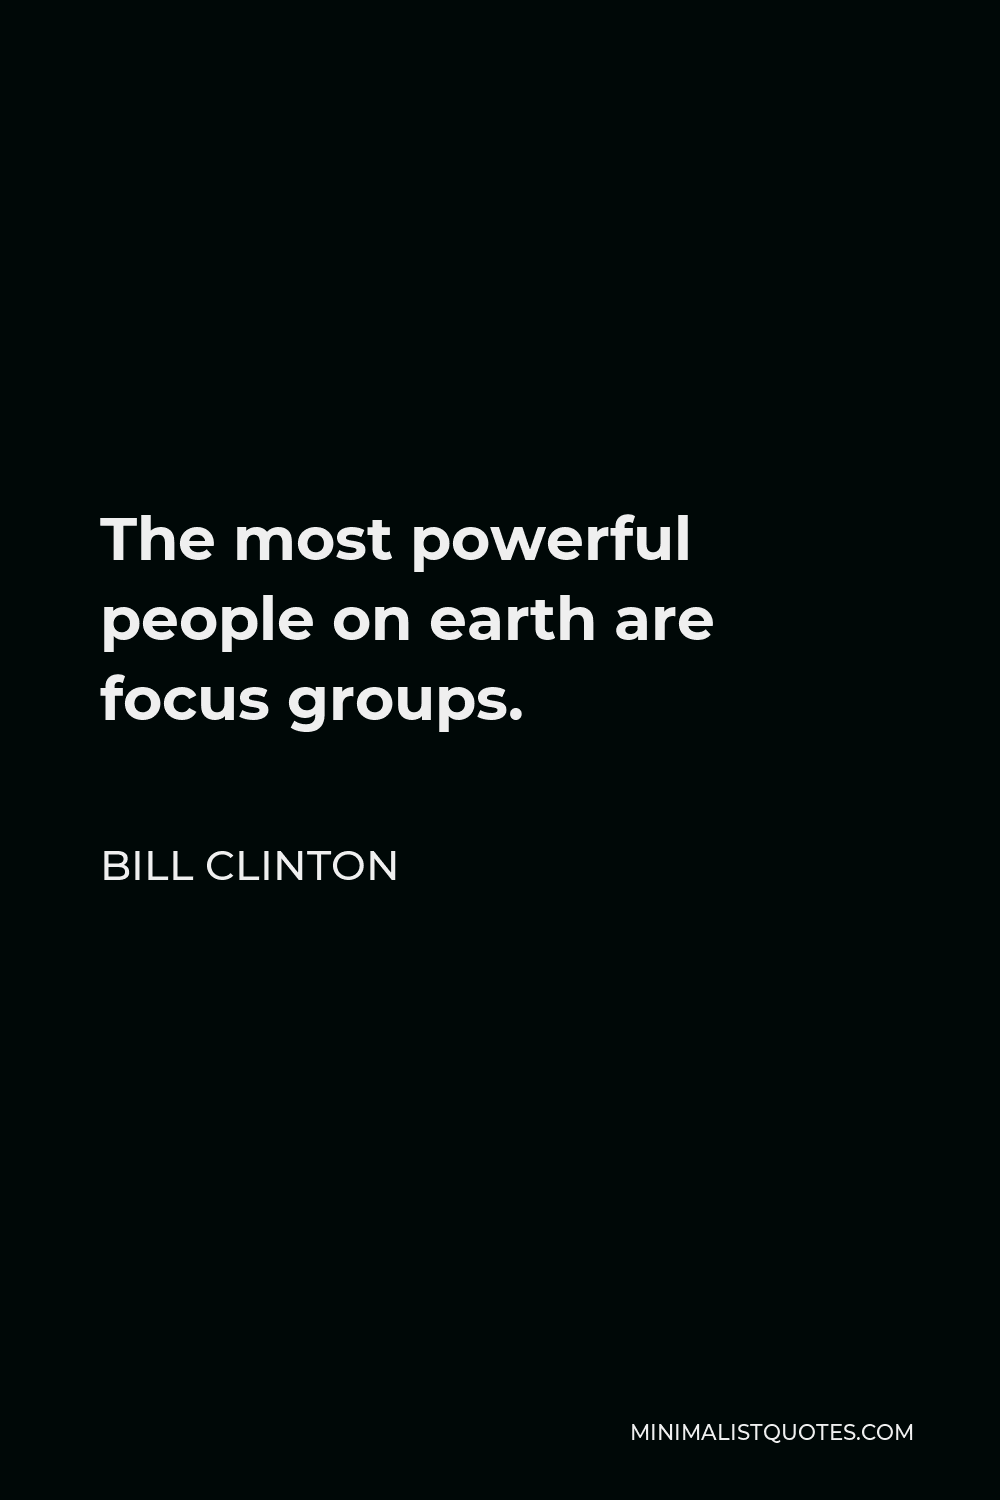 Bill Clinton Quote - The most powerful people on earth are focus groups.